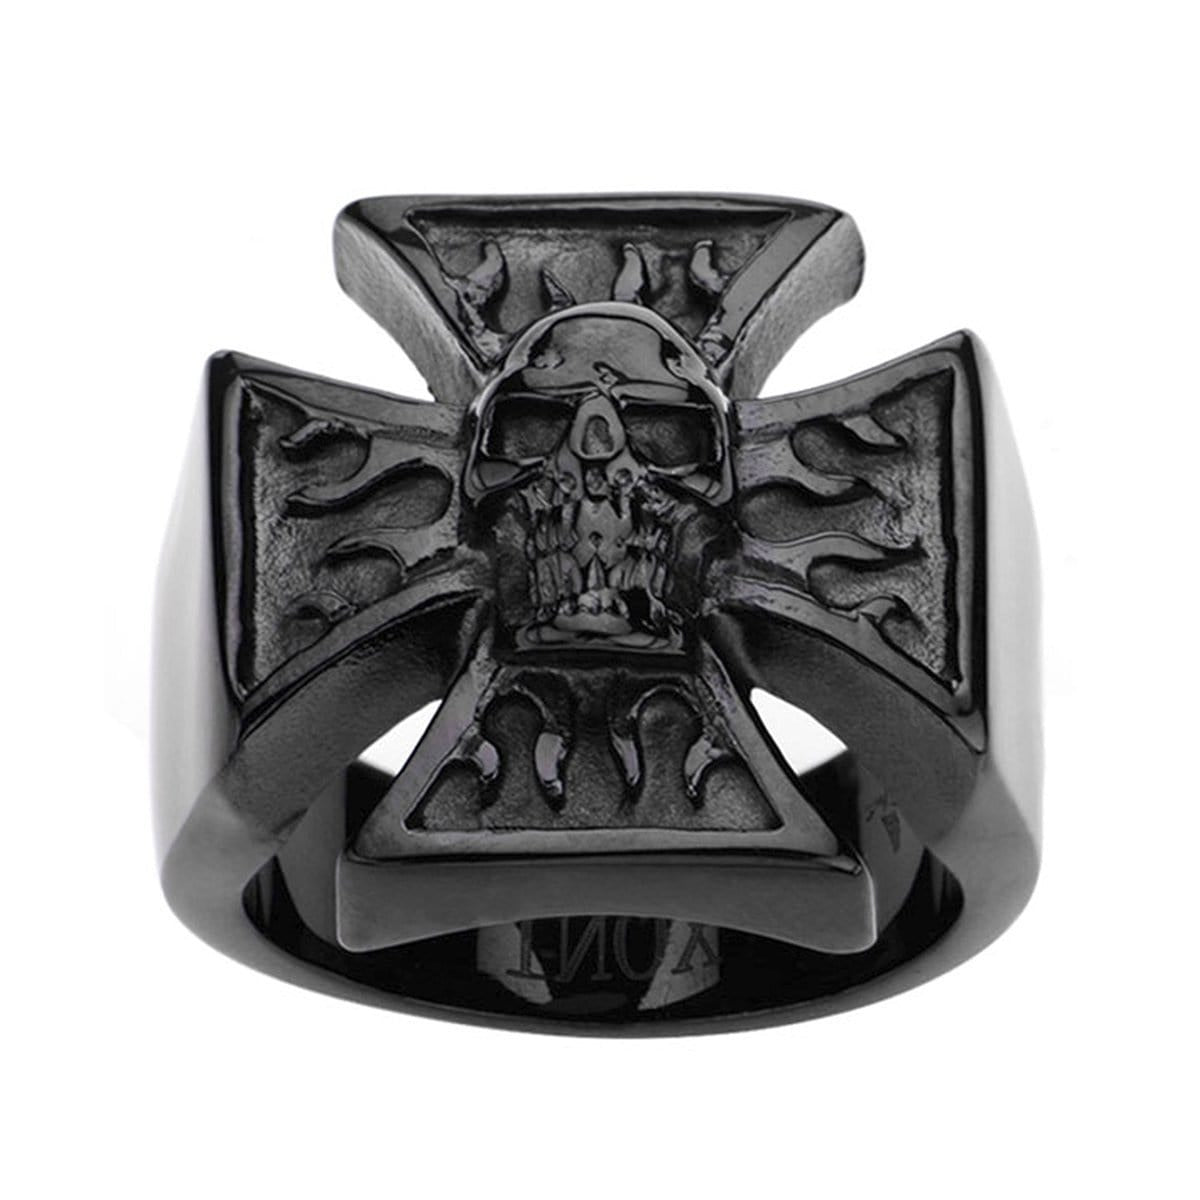 Black Stainless Steel Flaming Iron Cross Skull Ring - Inox Jewelry India